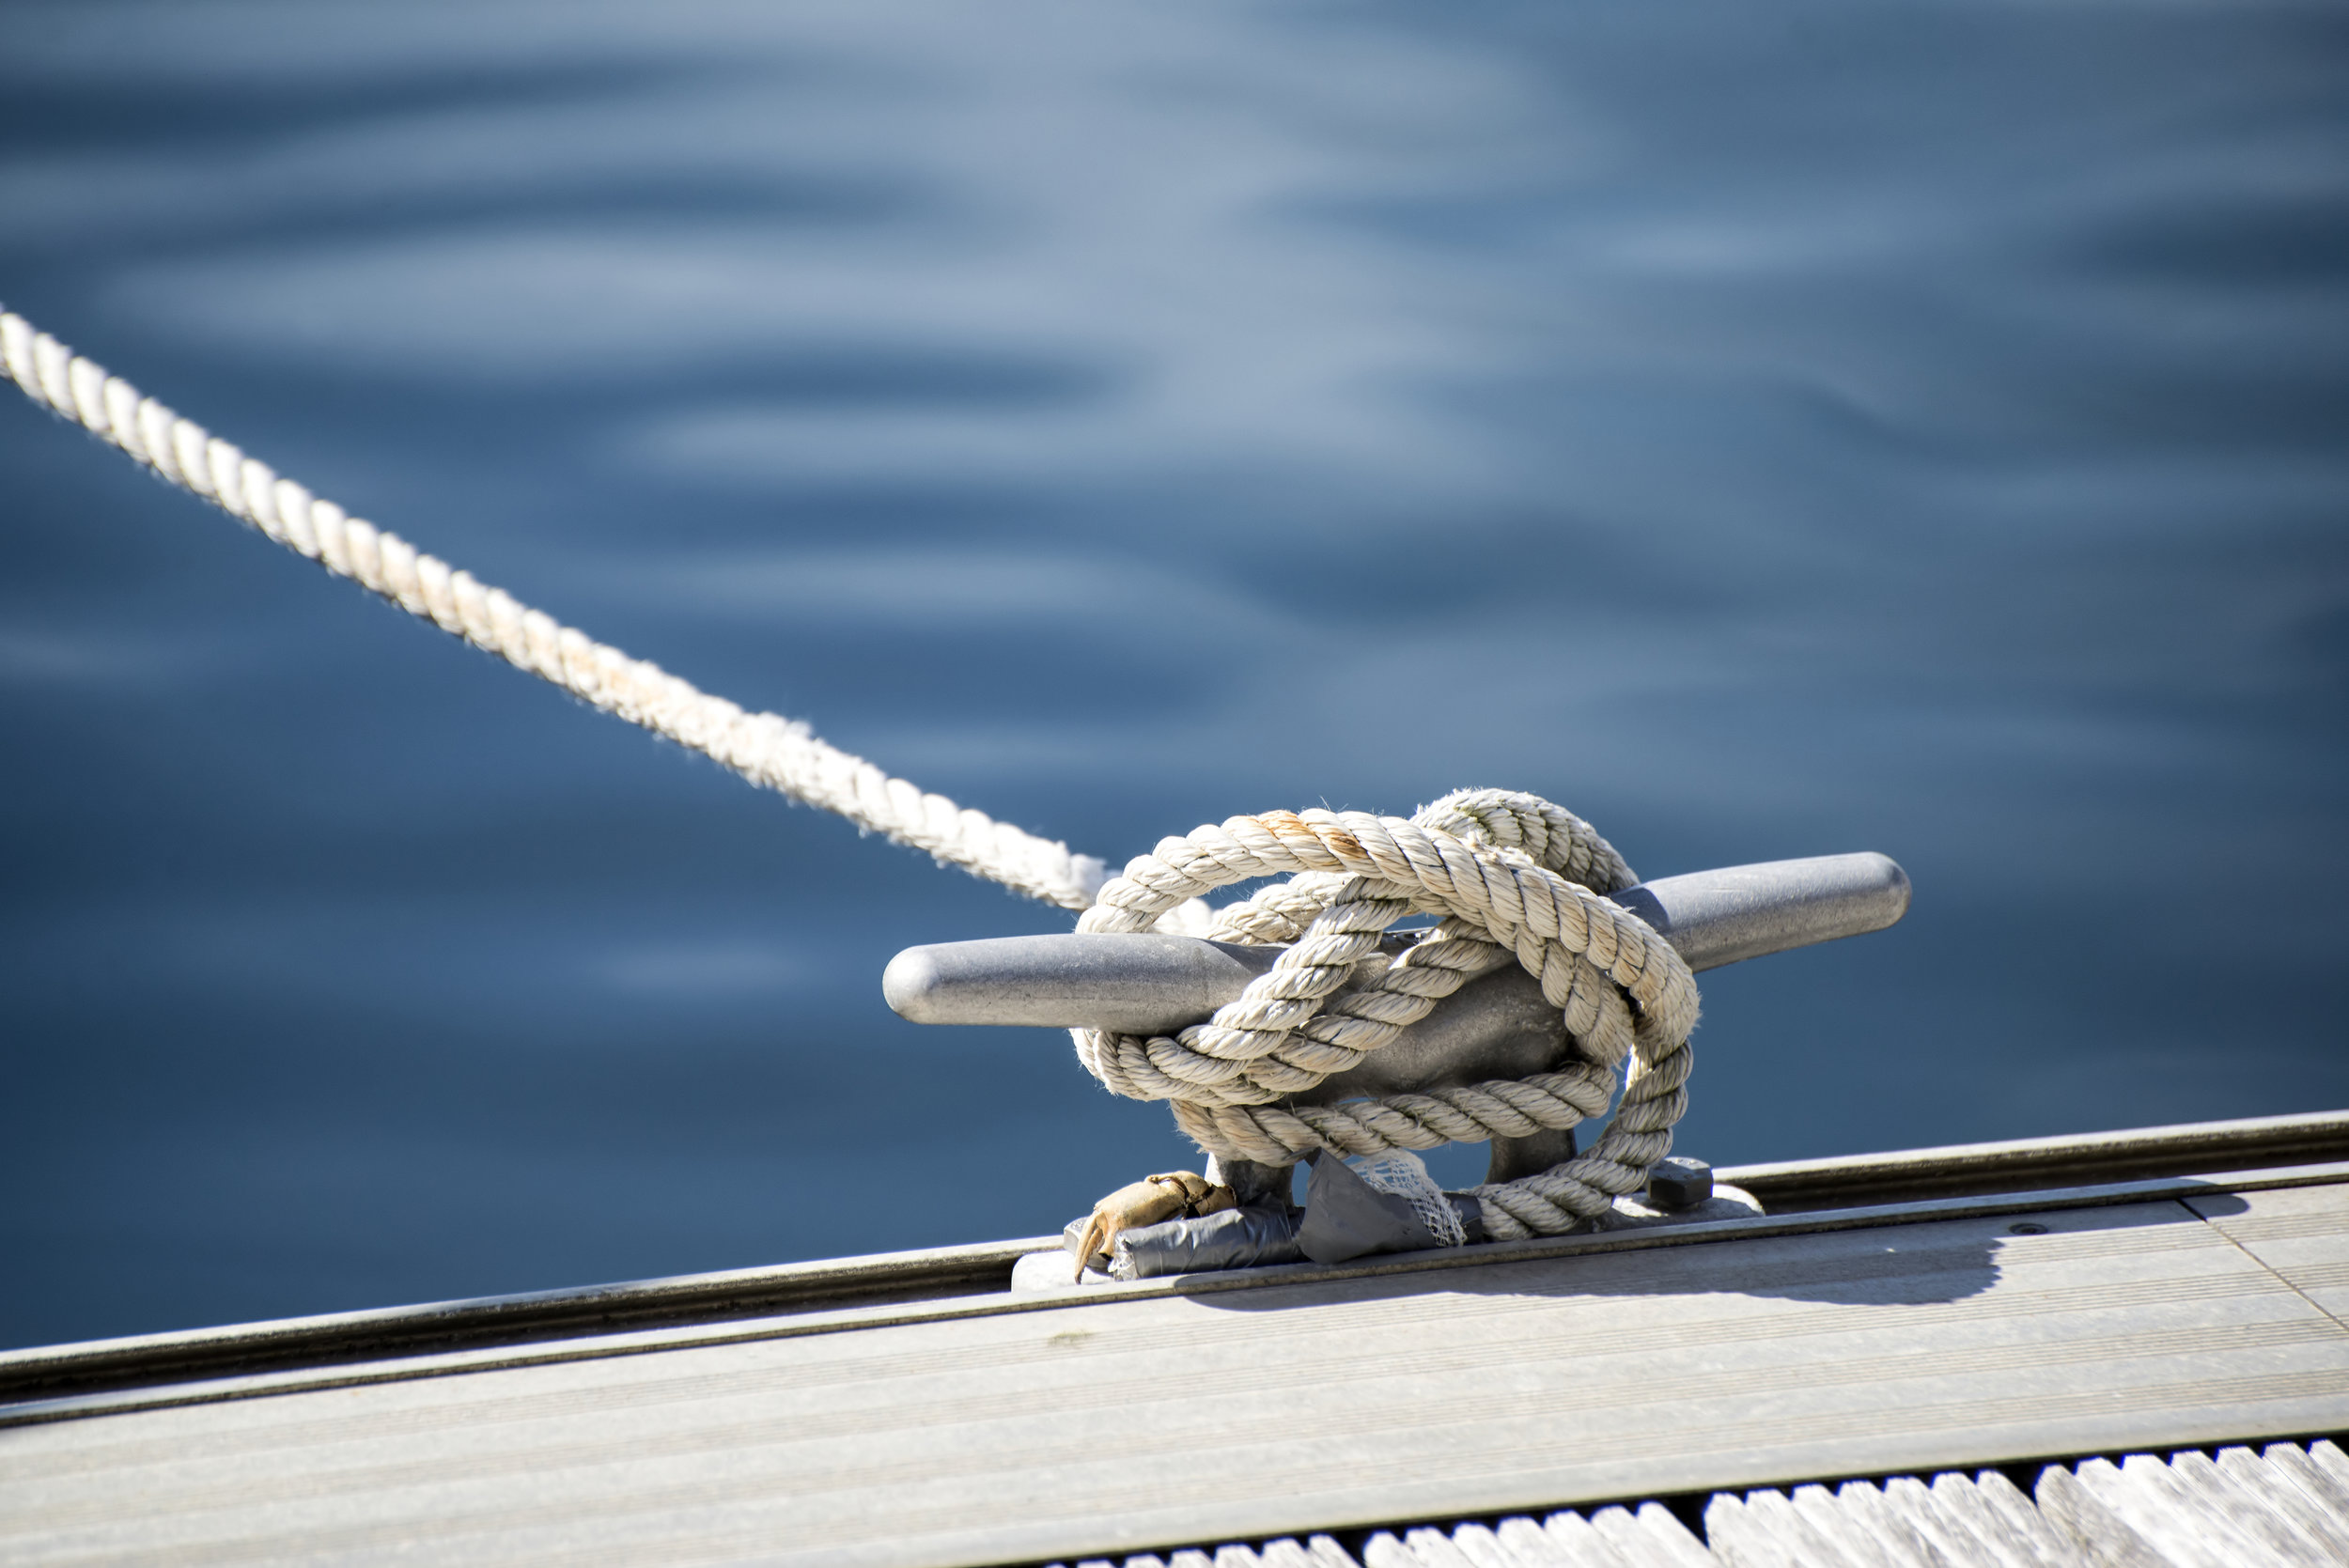 A boat cleat tied with a rope